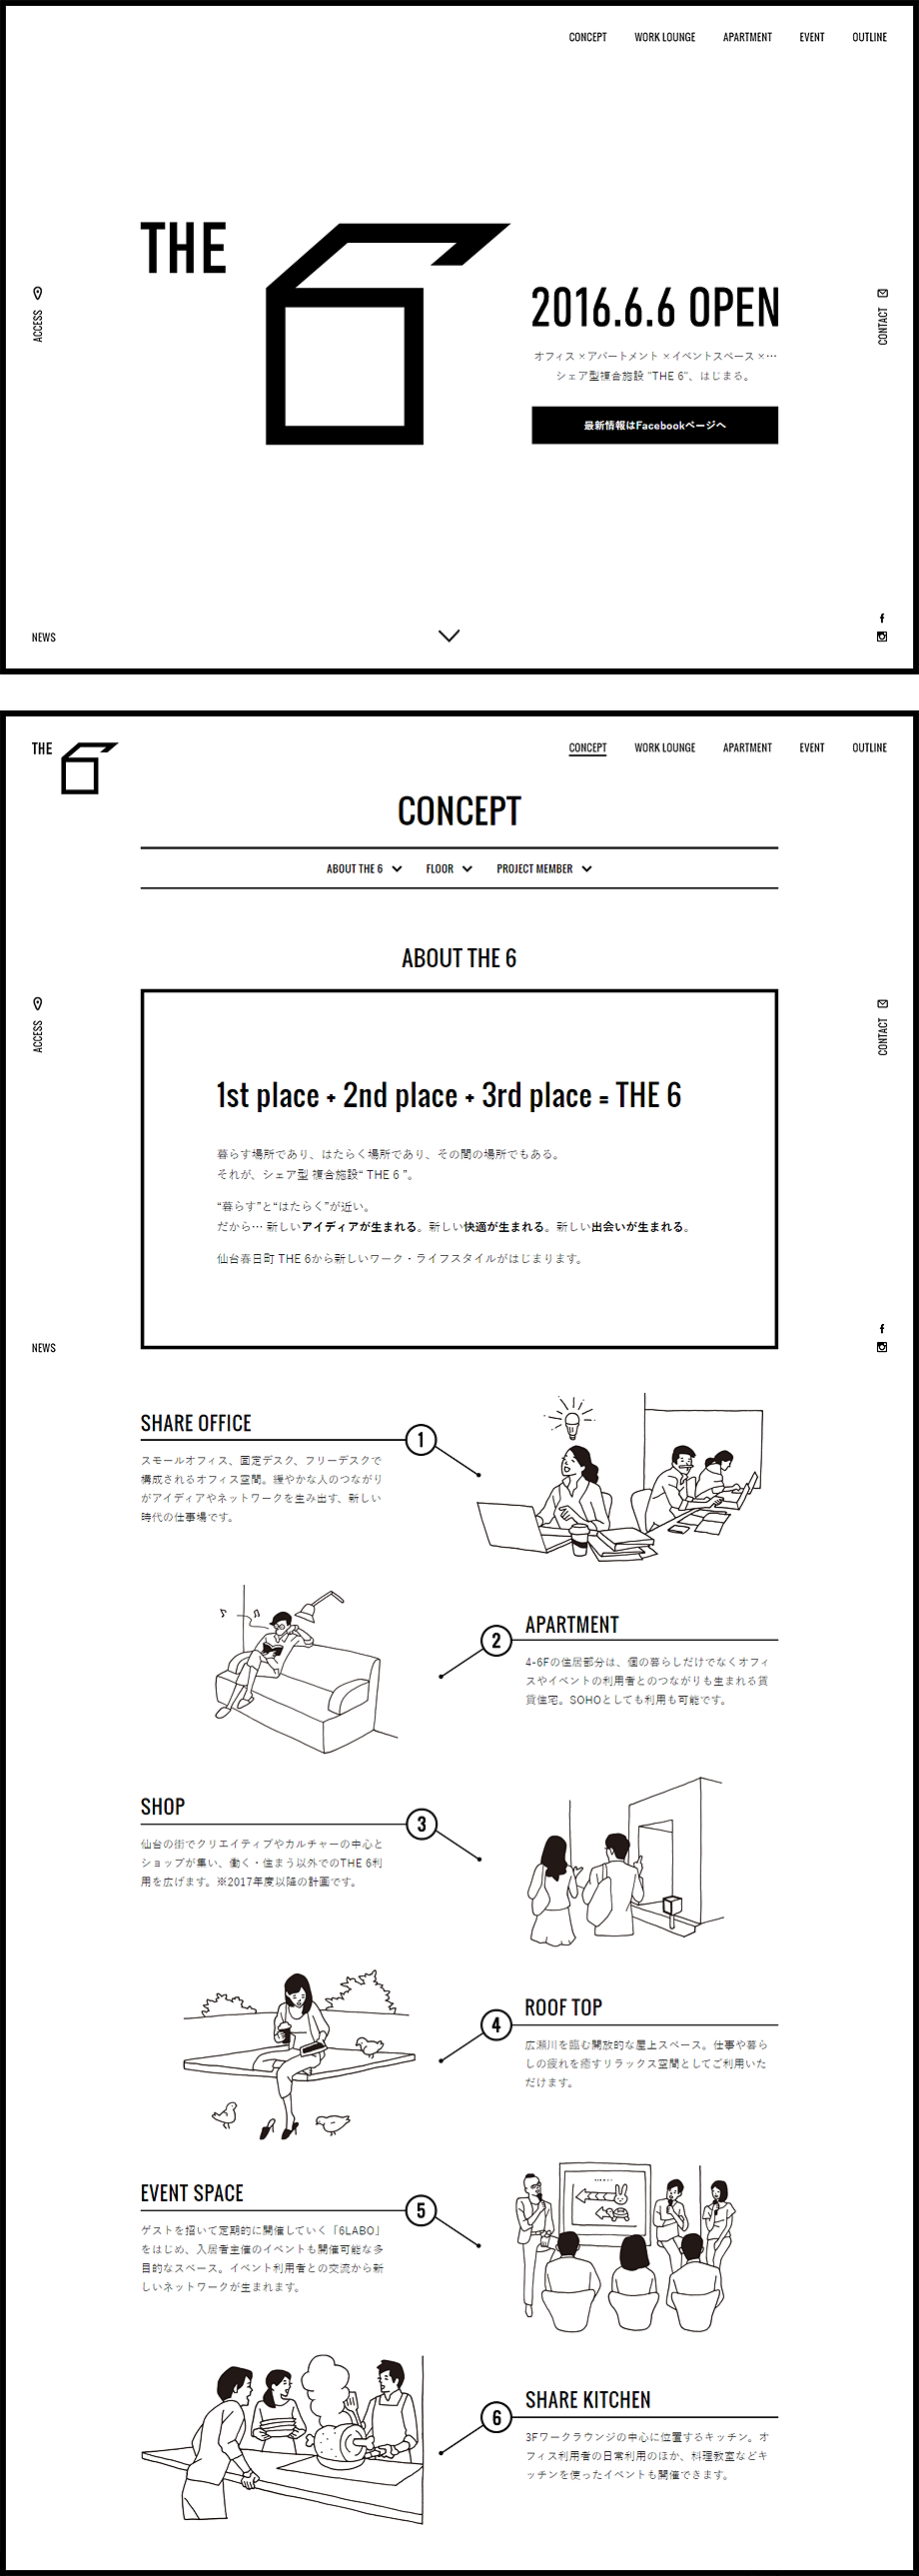 http://the6.jp/